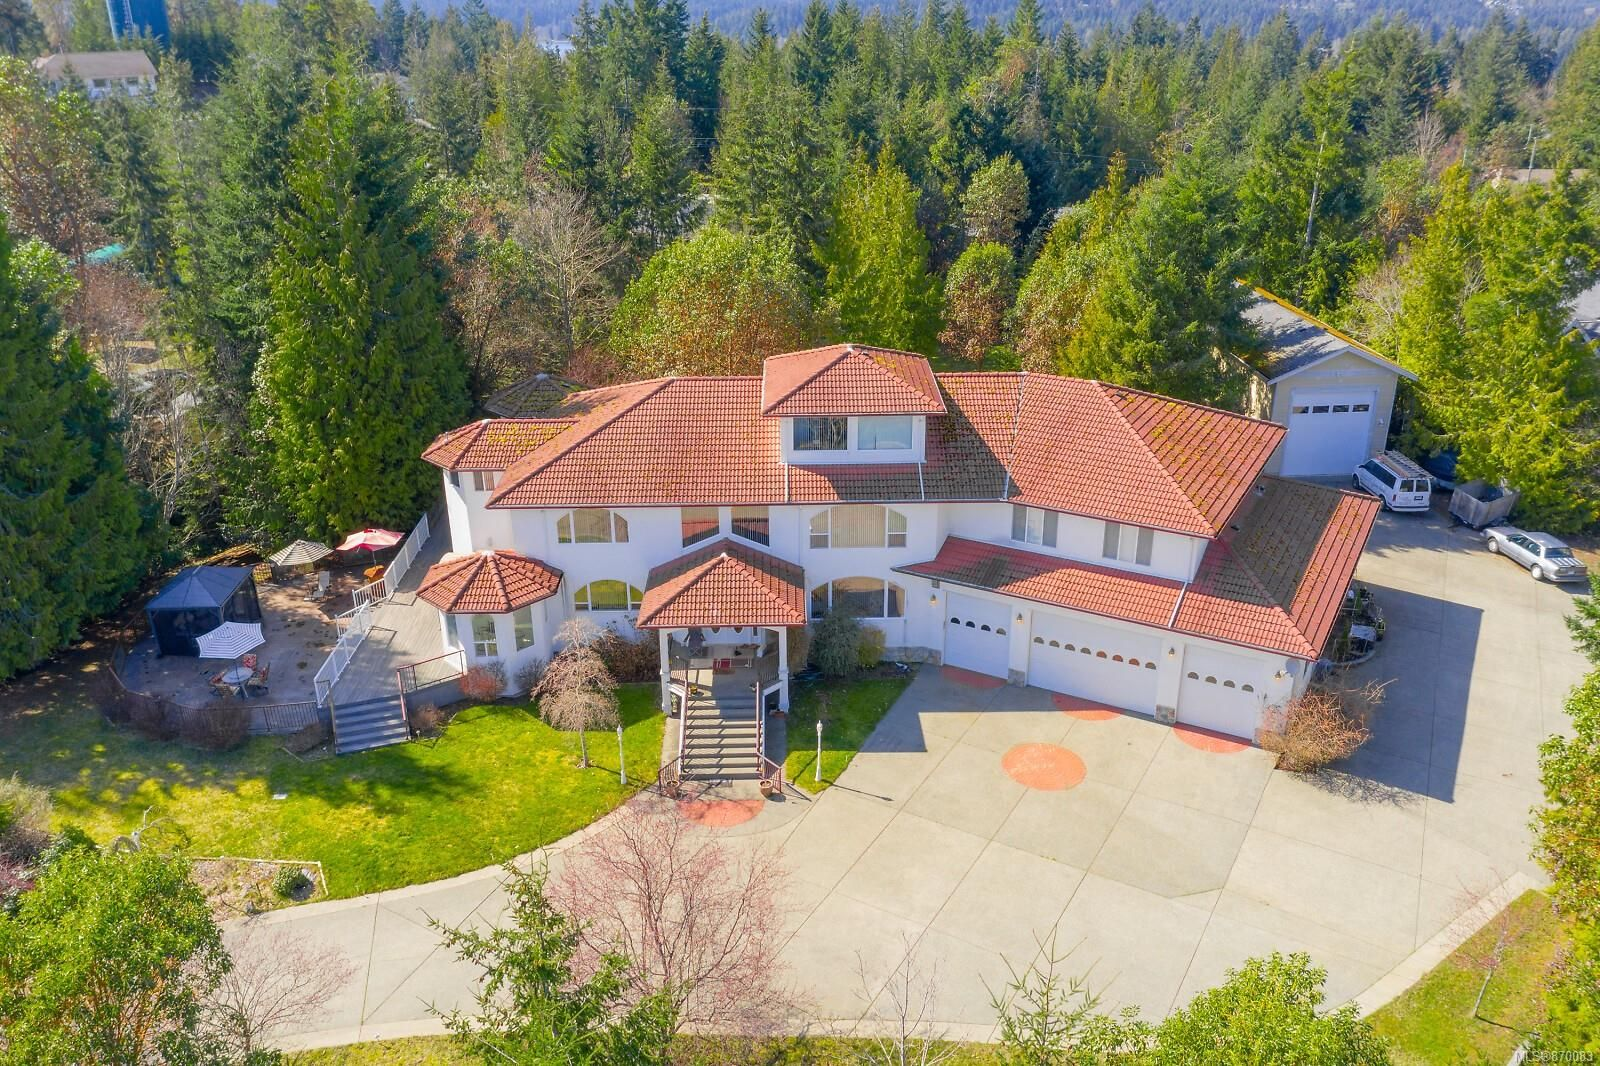 Main Photo: 2647 Treit Rd in : ML Shawnigan House for sale (Malahat & Area)  : MLS®# 870083